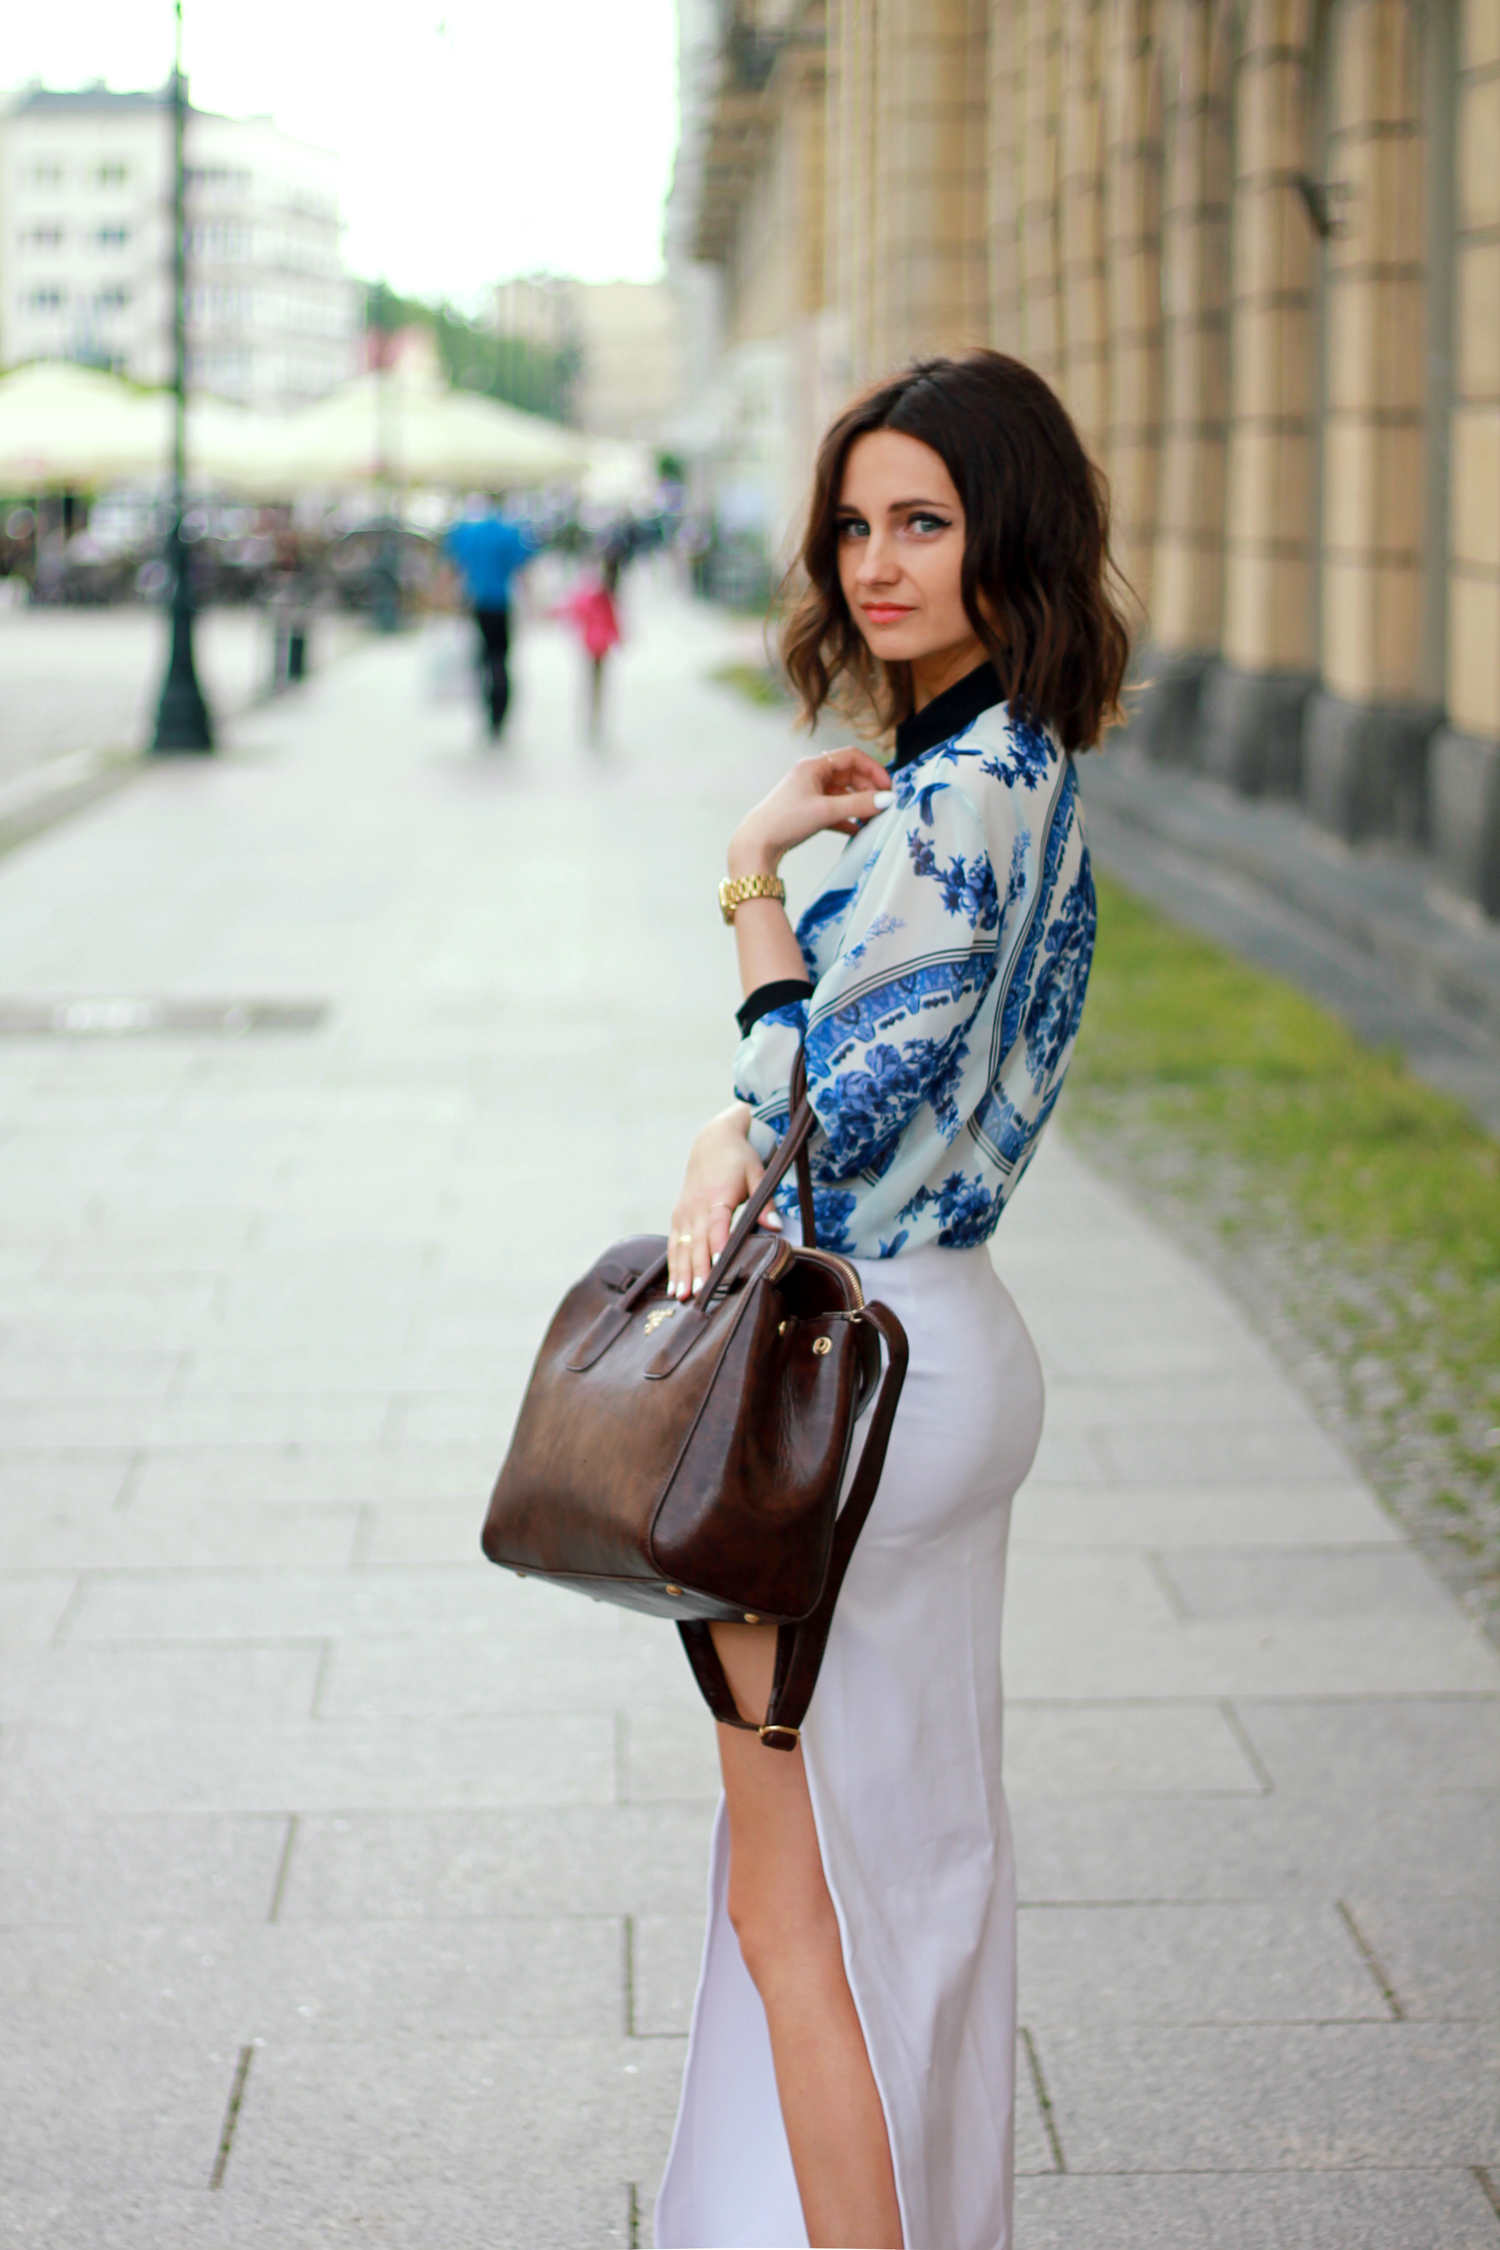 Brunette lil 39 icons Pretty girl fashion style tumblr